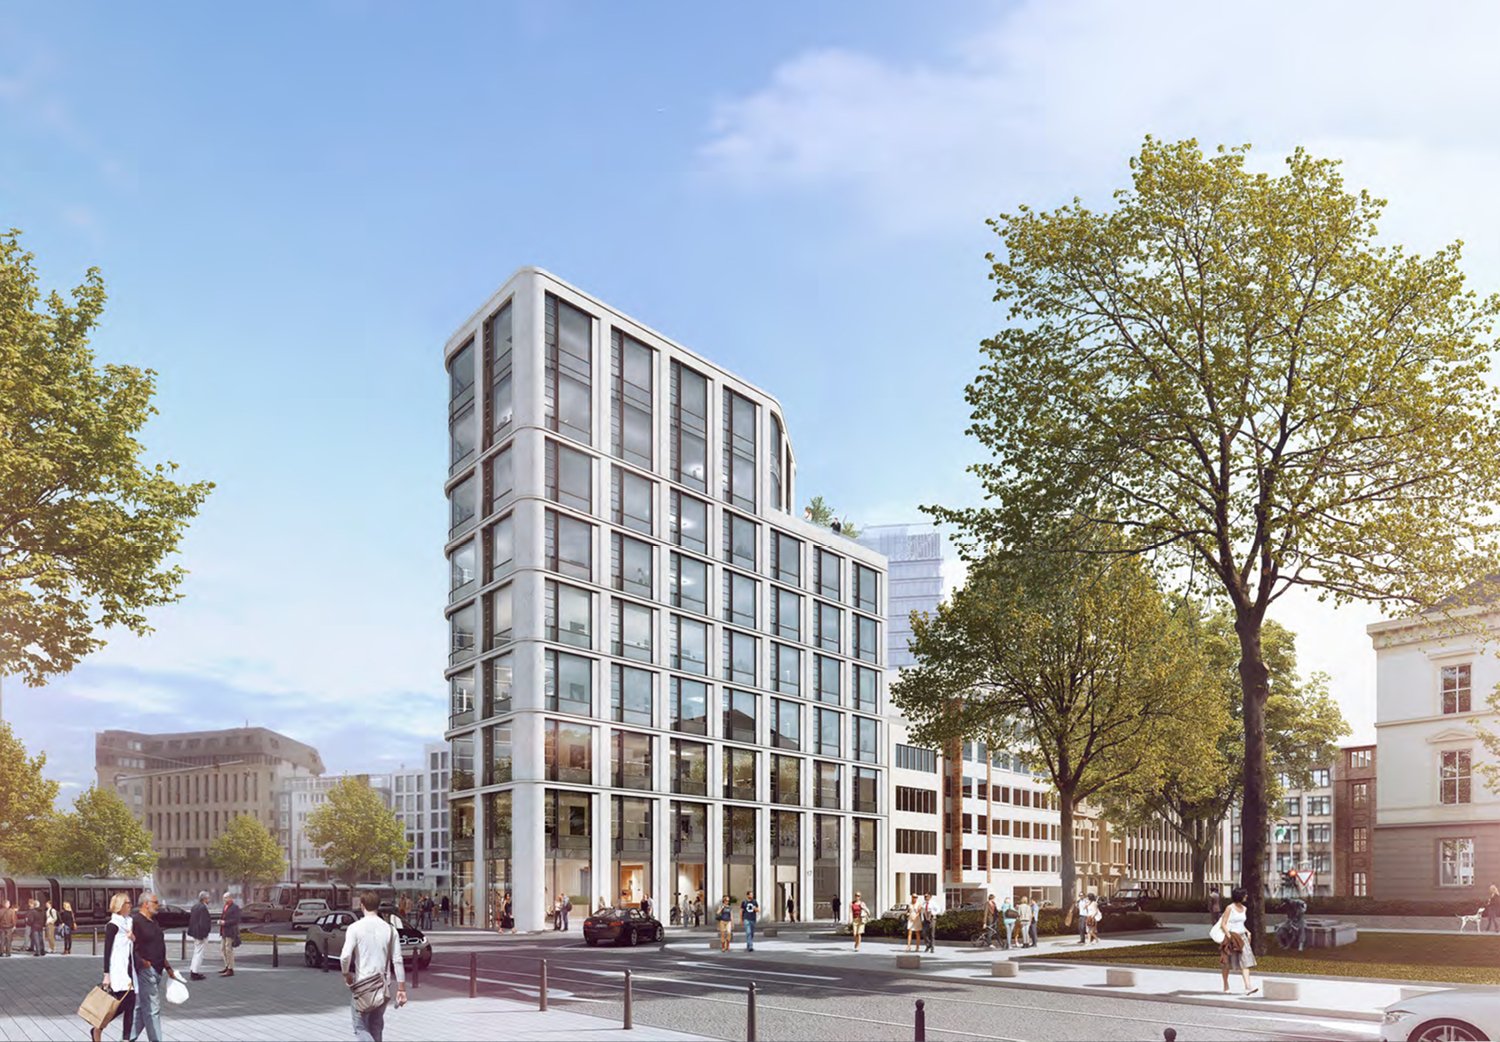 Current project: Demolition and construction of an office and retail property, Berliner Allee 21, Dusseldorf